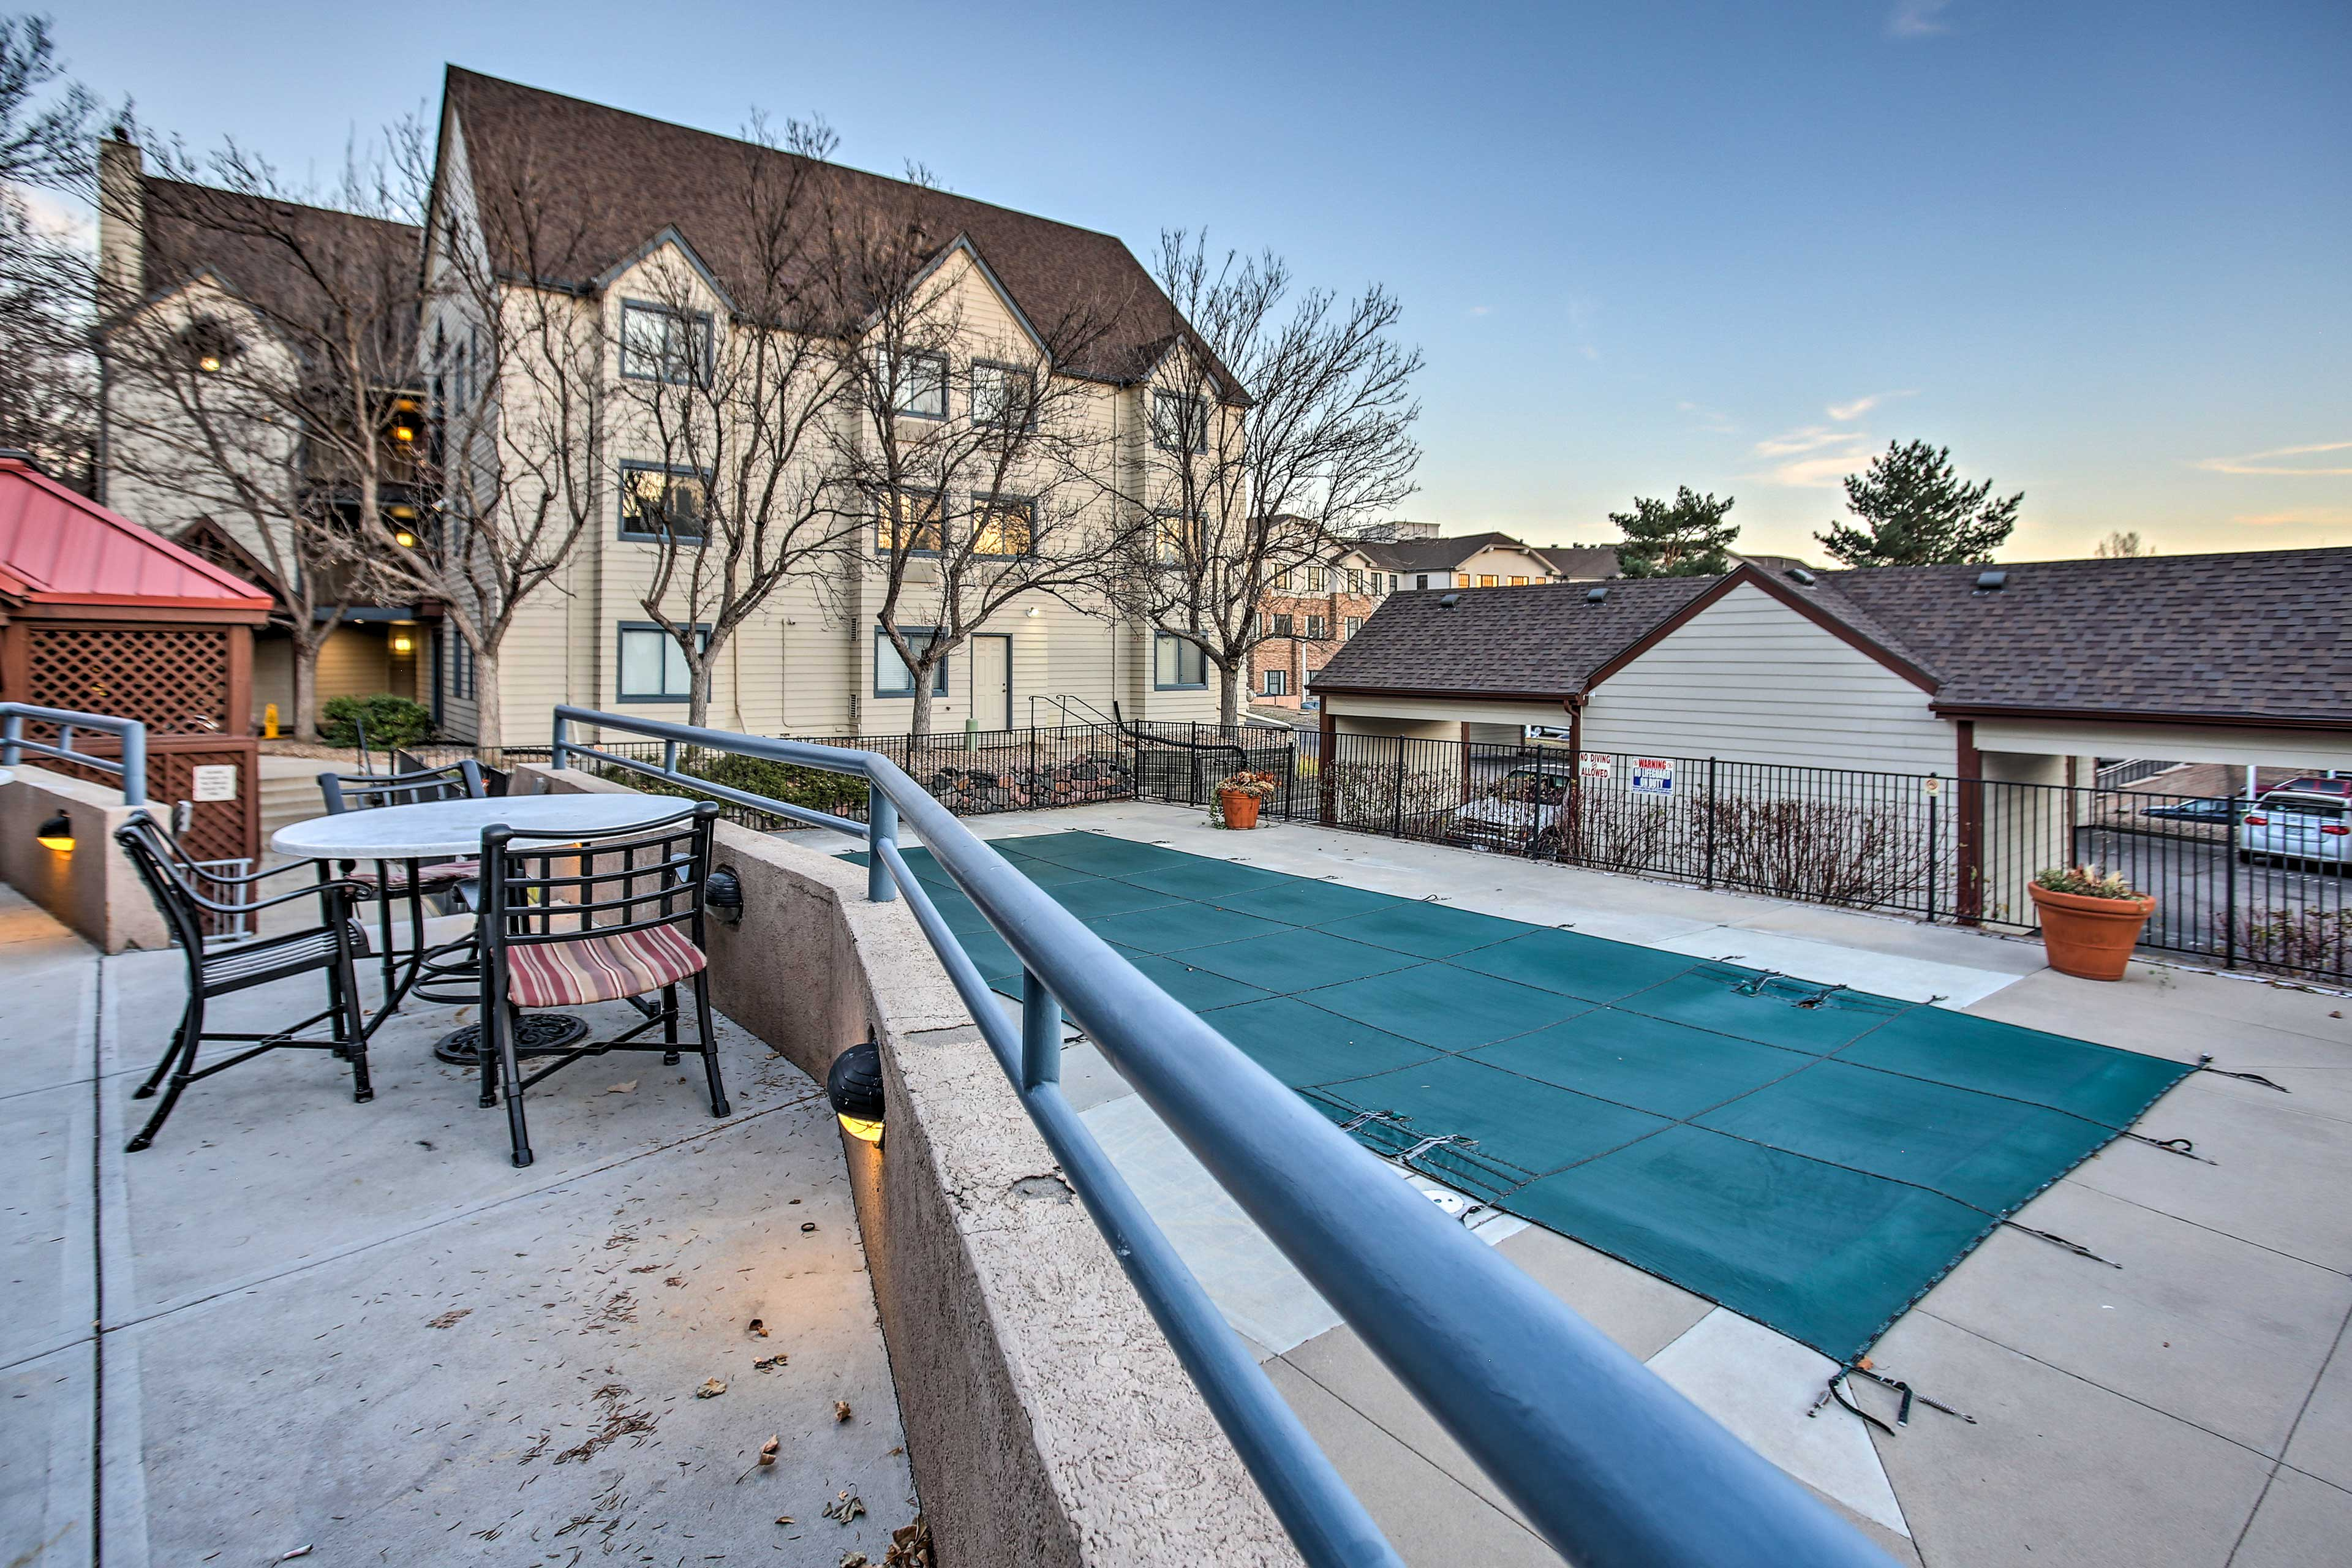 When the weather's right, take advantage of the on-site pool!